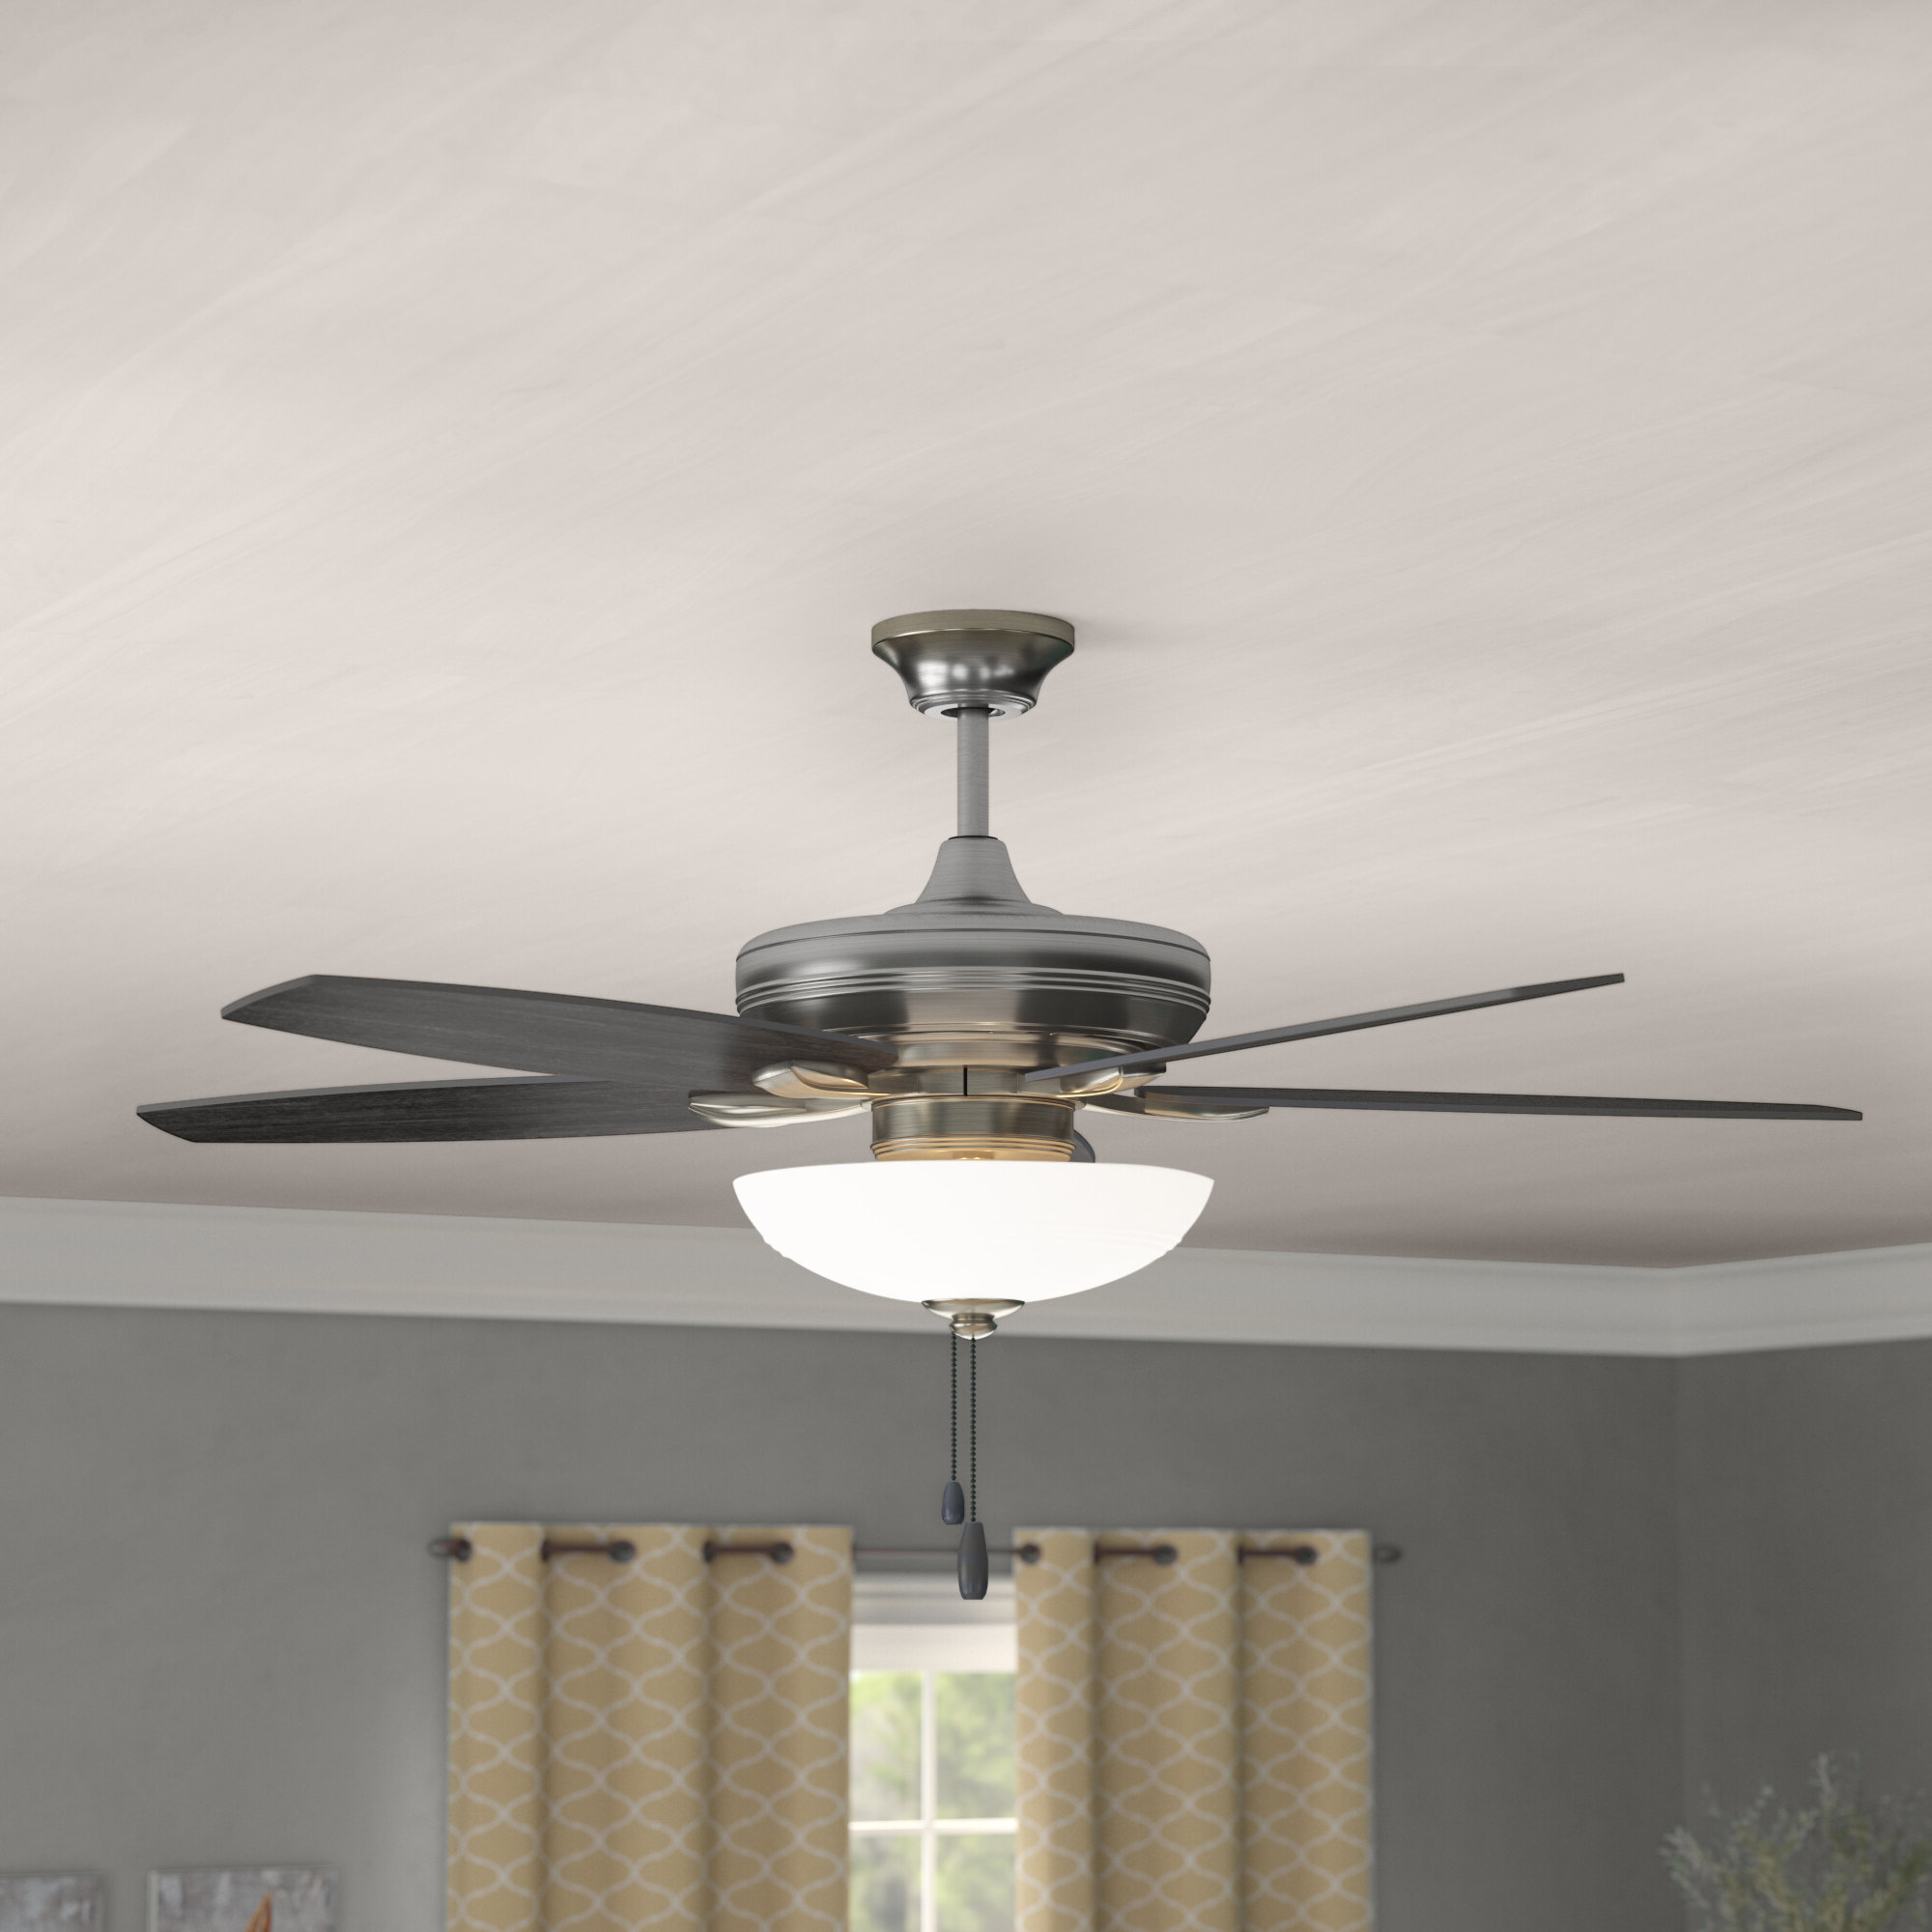 "52"" Millfield 5 Blades Led Ceiling Fan, Light Kit Included Throughout Current Auden 5 Blade Led Ceiling Fans (View 7 of 20)"